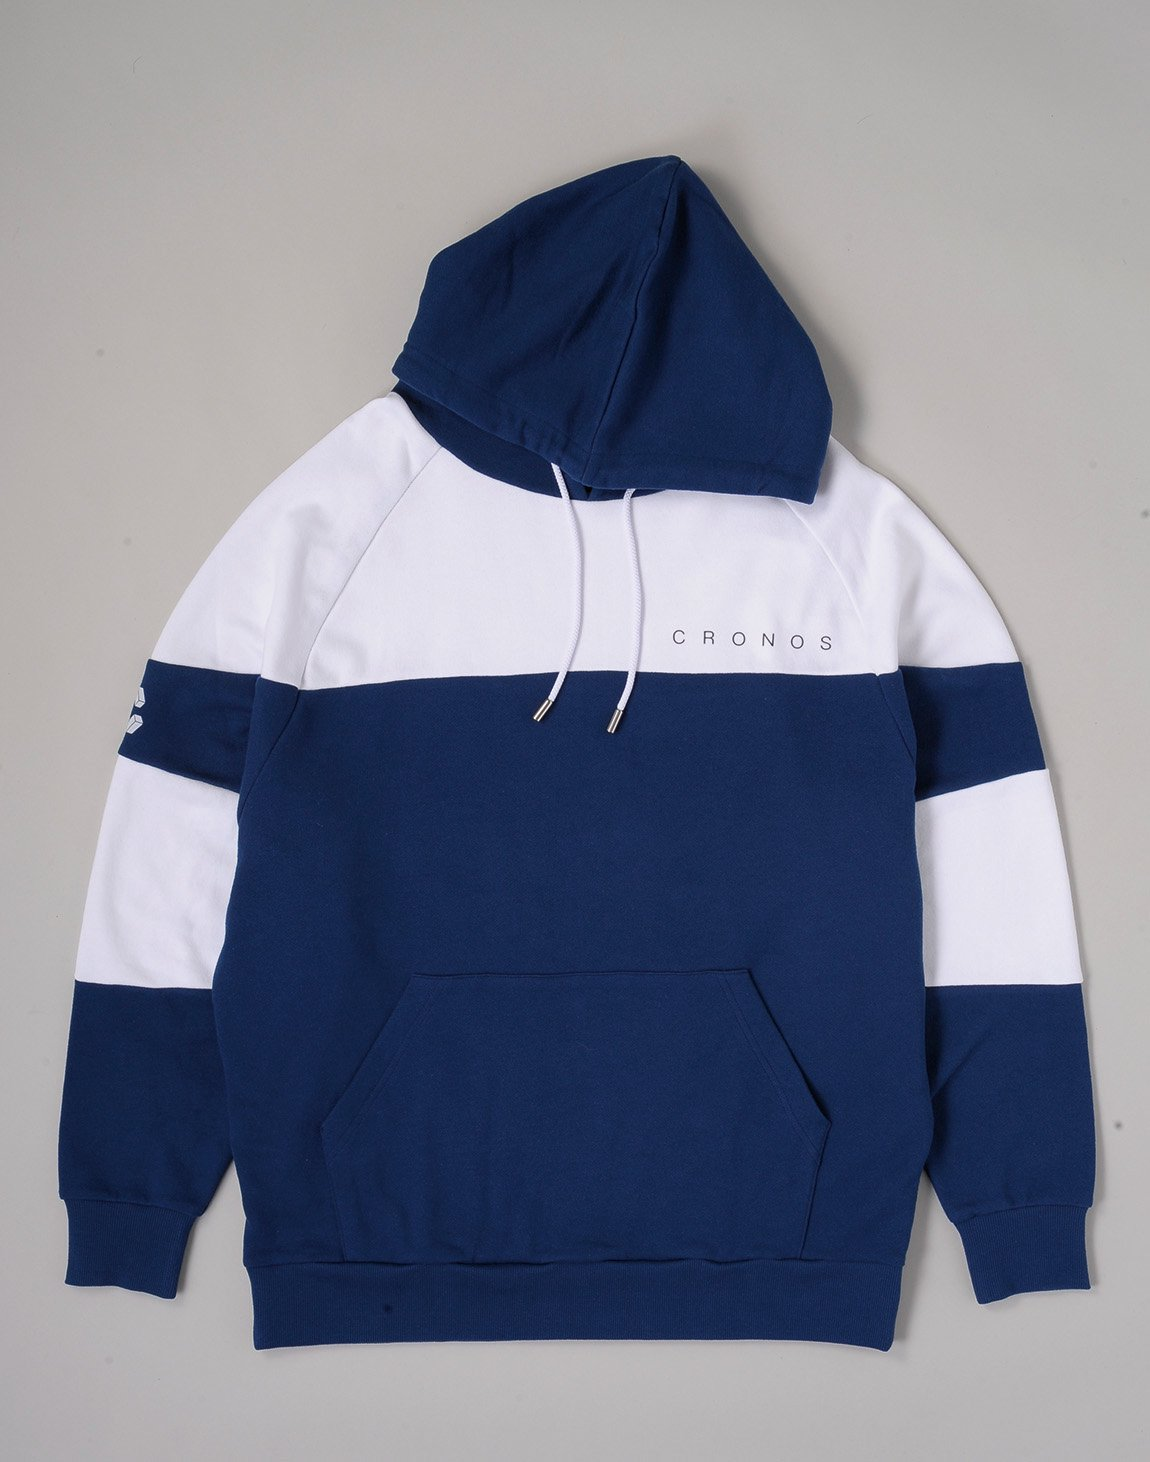 <img class='new_mark_img1' src='https://img.shop-pro.jp/img/new/icons1.gif' style='border:none;display:inline;margin:0px;padding:0px;width:auto;' />CRONOS CUT BACK BASIC HOODIE【NAVYxWHITE】